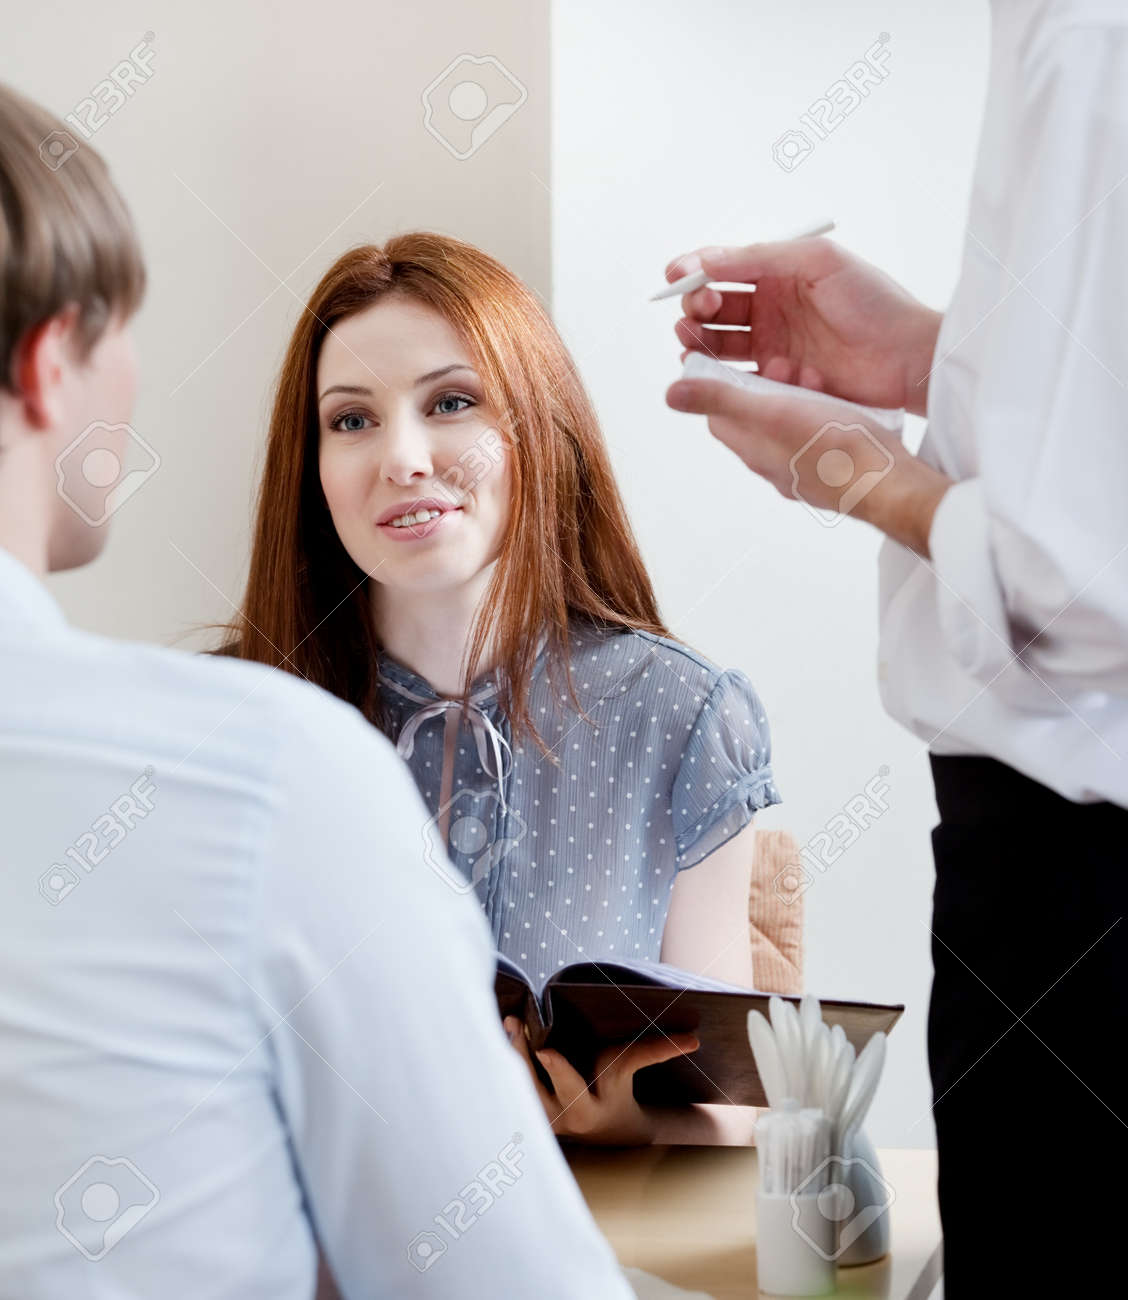 Pair makes the order to the waiter at the coffee house Stock Photo - 17457735